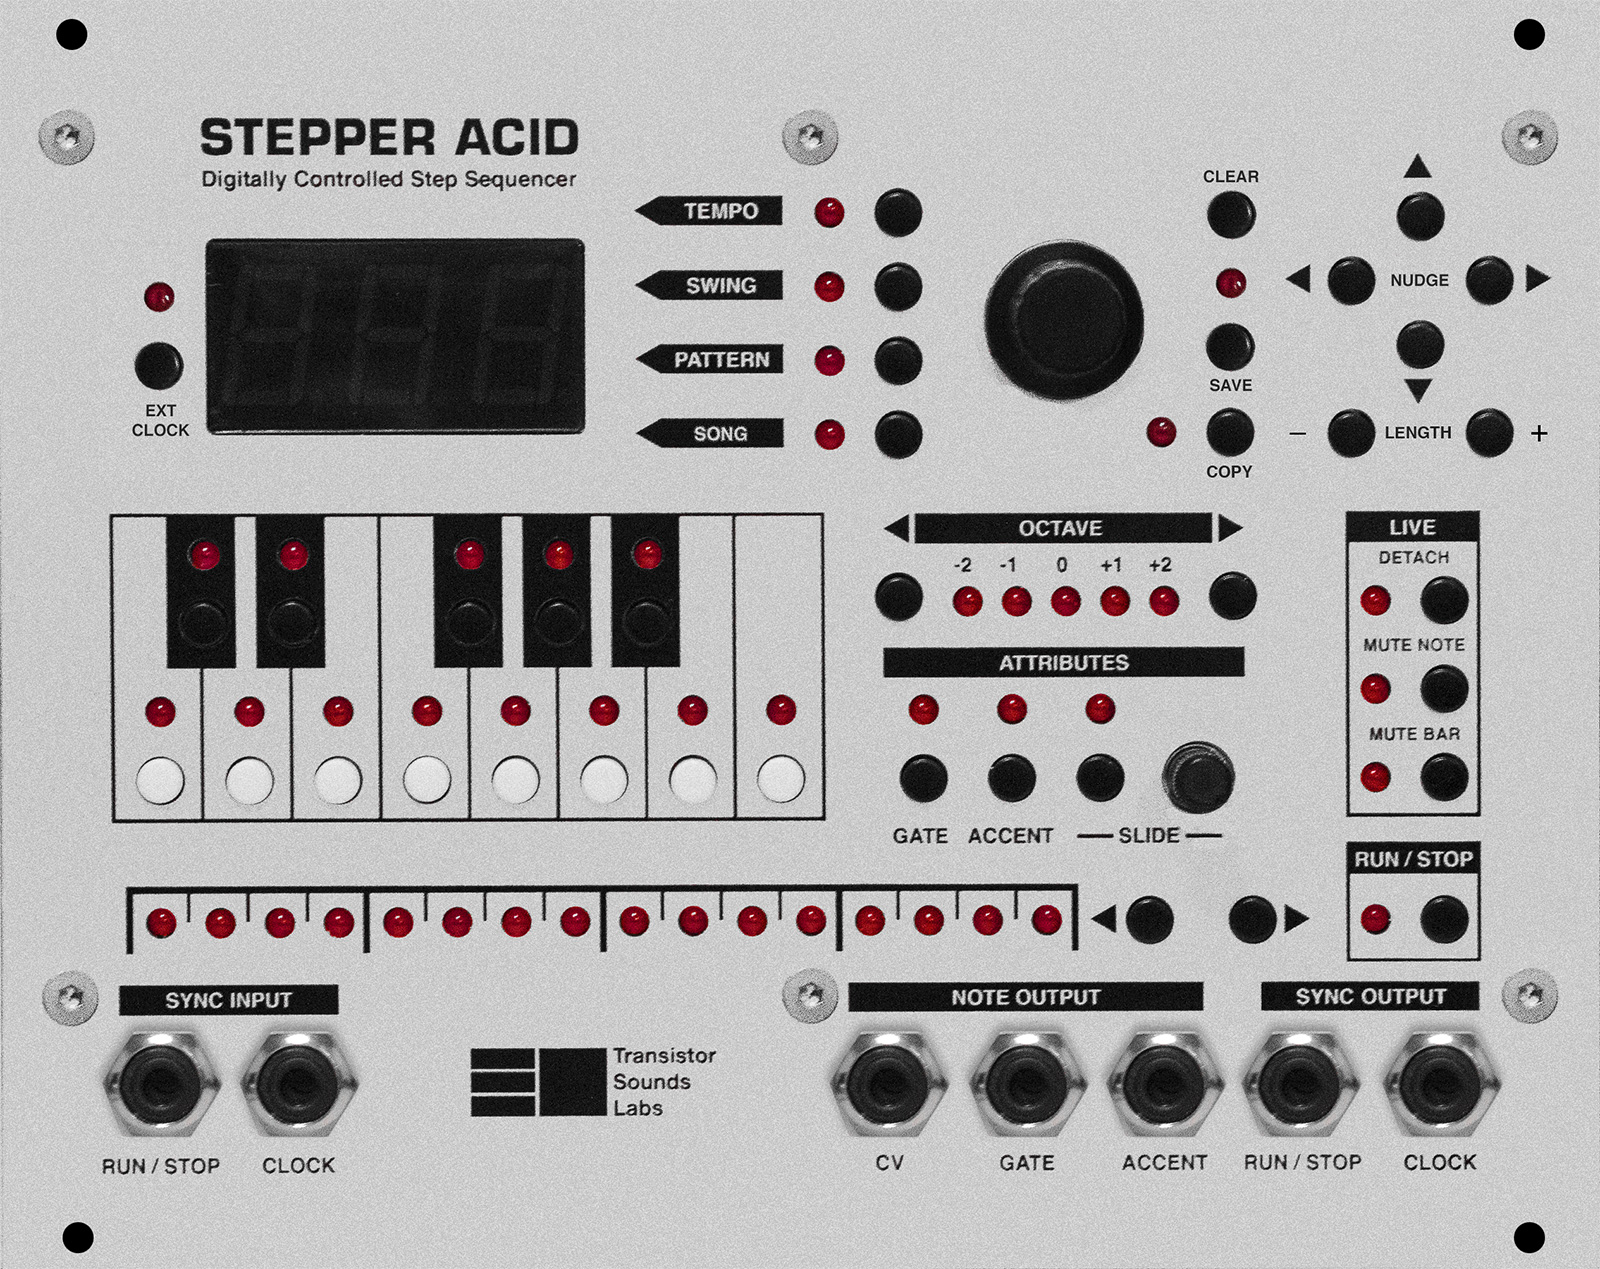 Stepper Acid Front Panel Flat